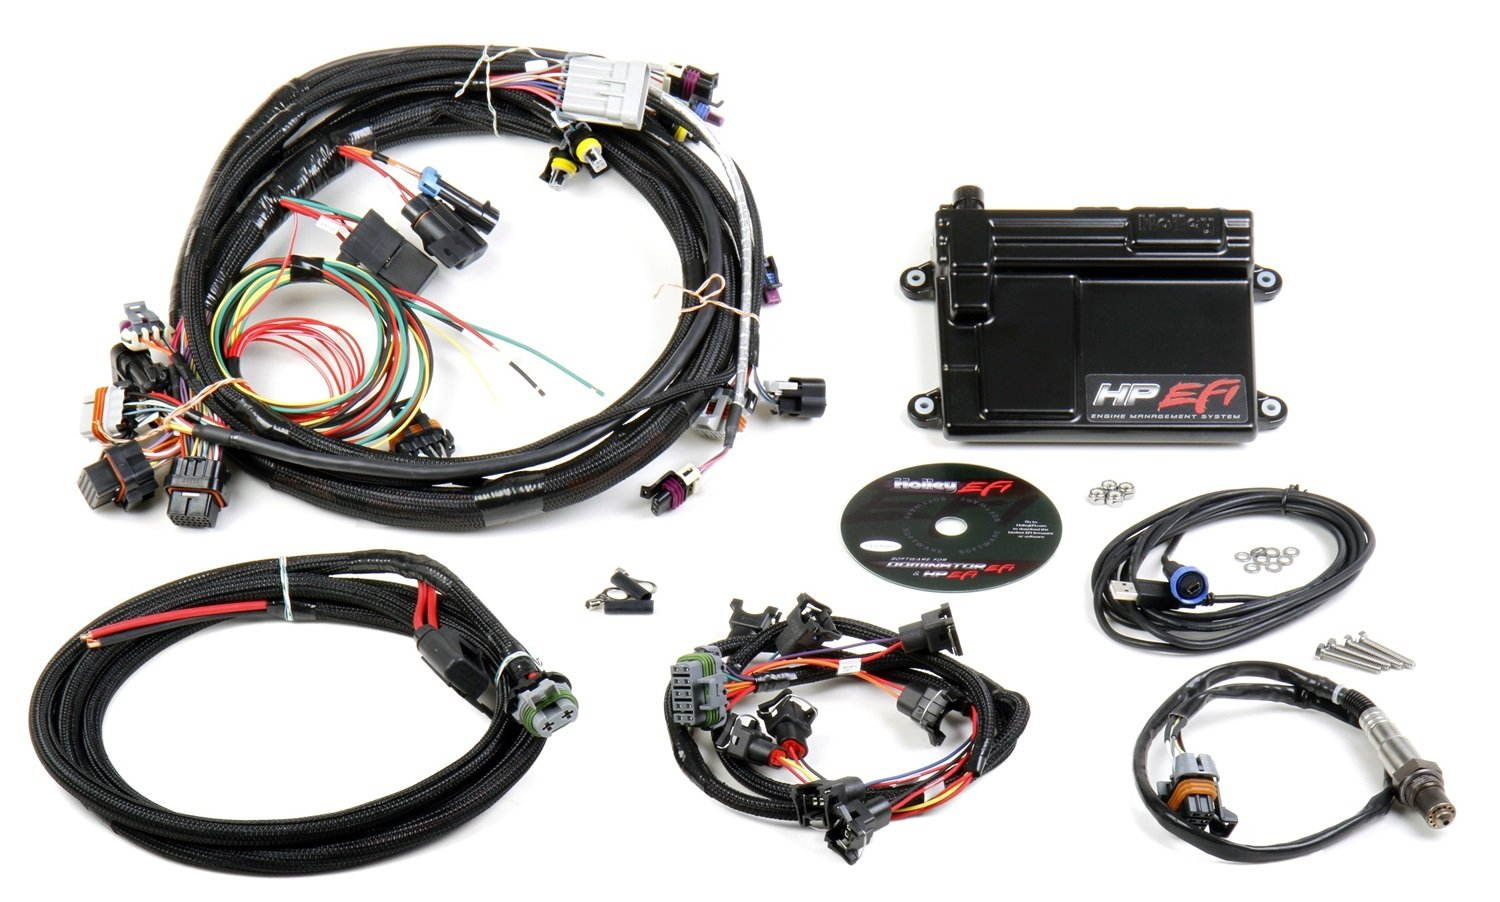 71yuQ%2BumfWL._SL1500_ amazon com holley 550 602 hp efi, ecu and harness kit automotive ecu wiring harness for 1999 mazda 626 at mifinder.co